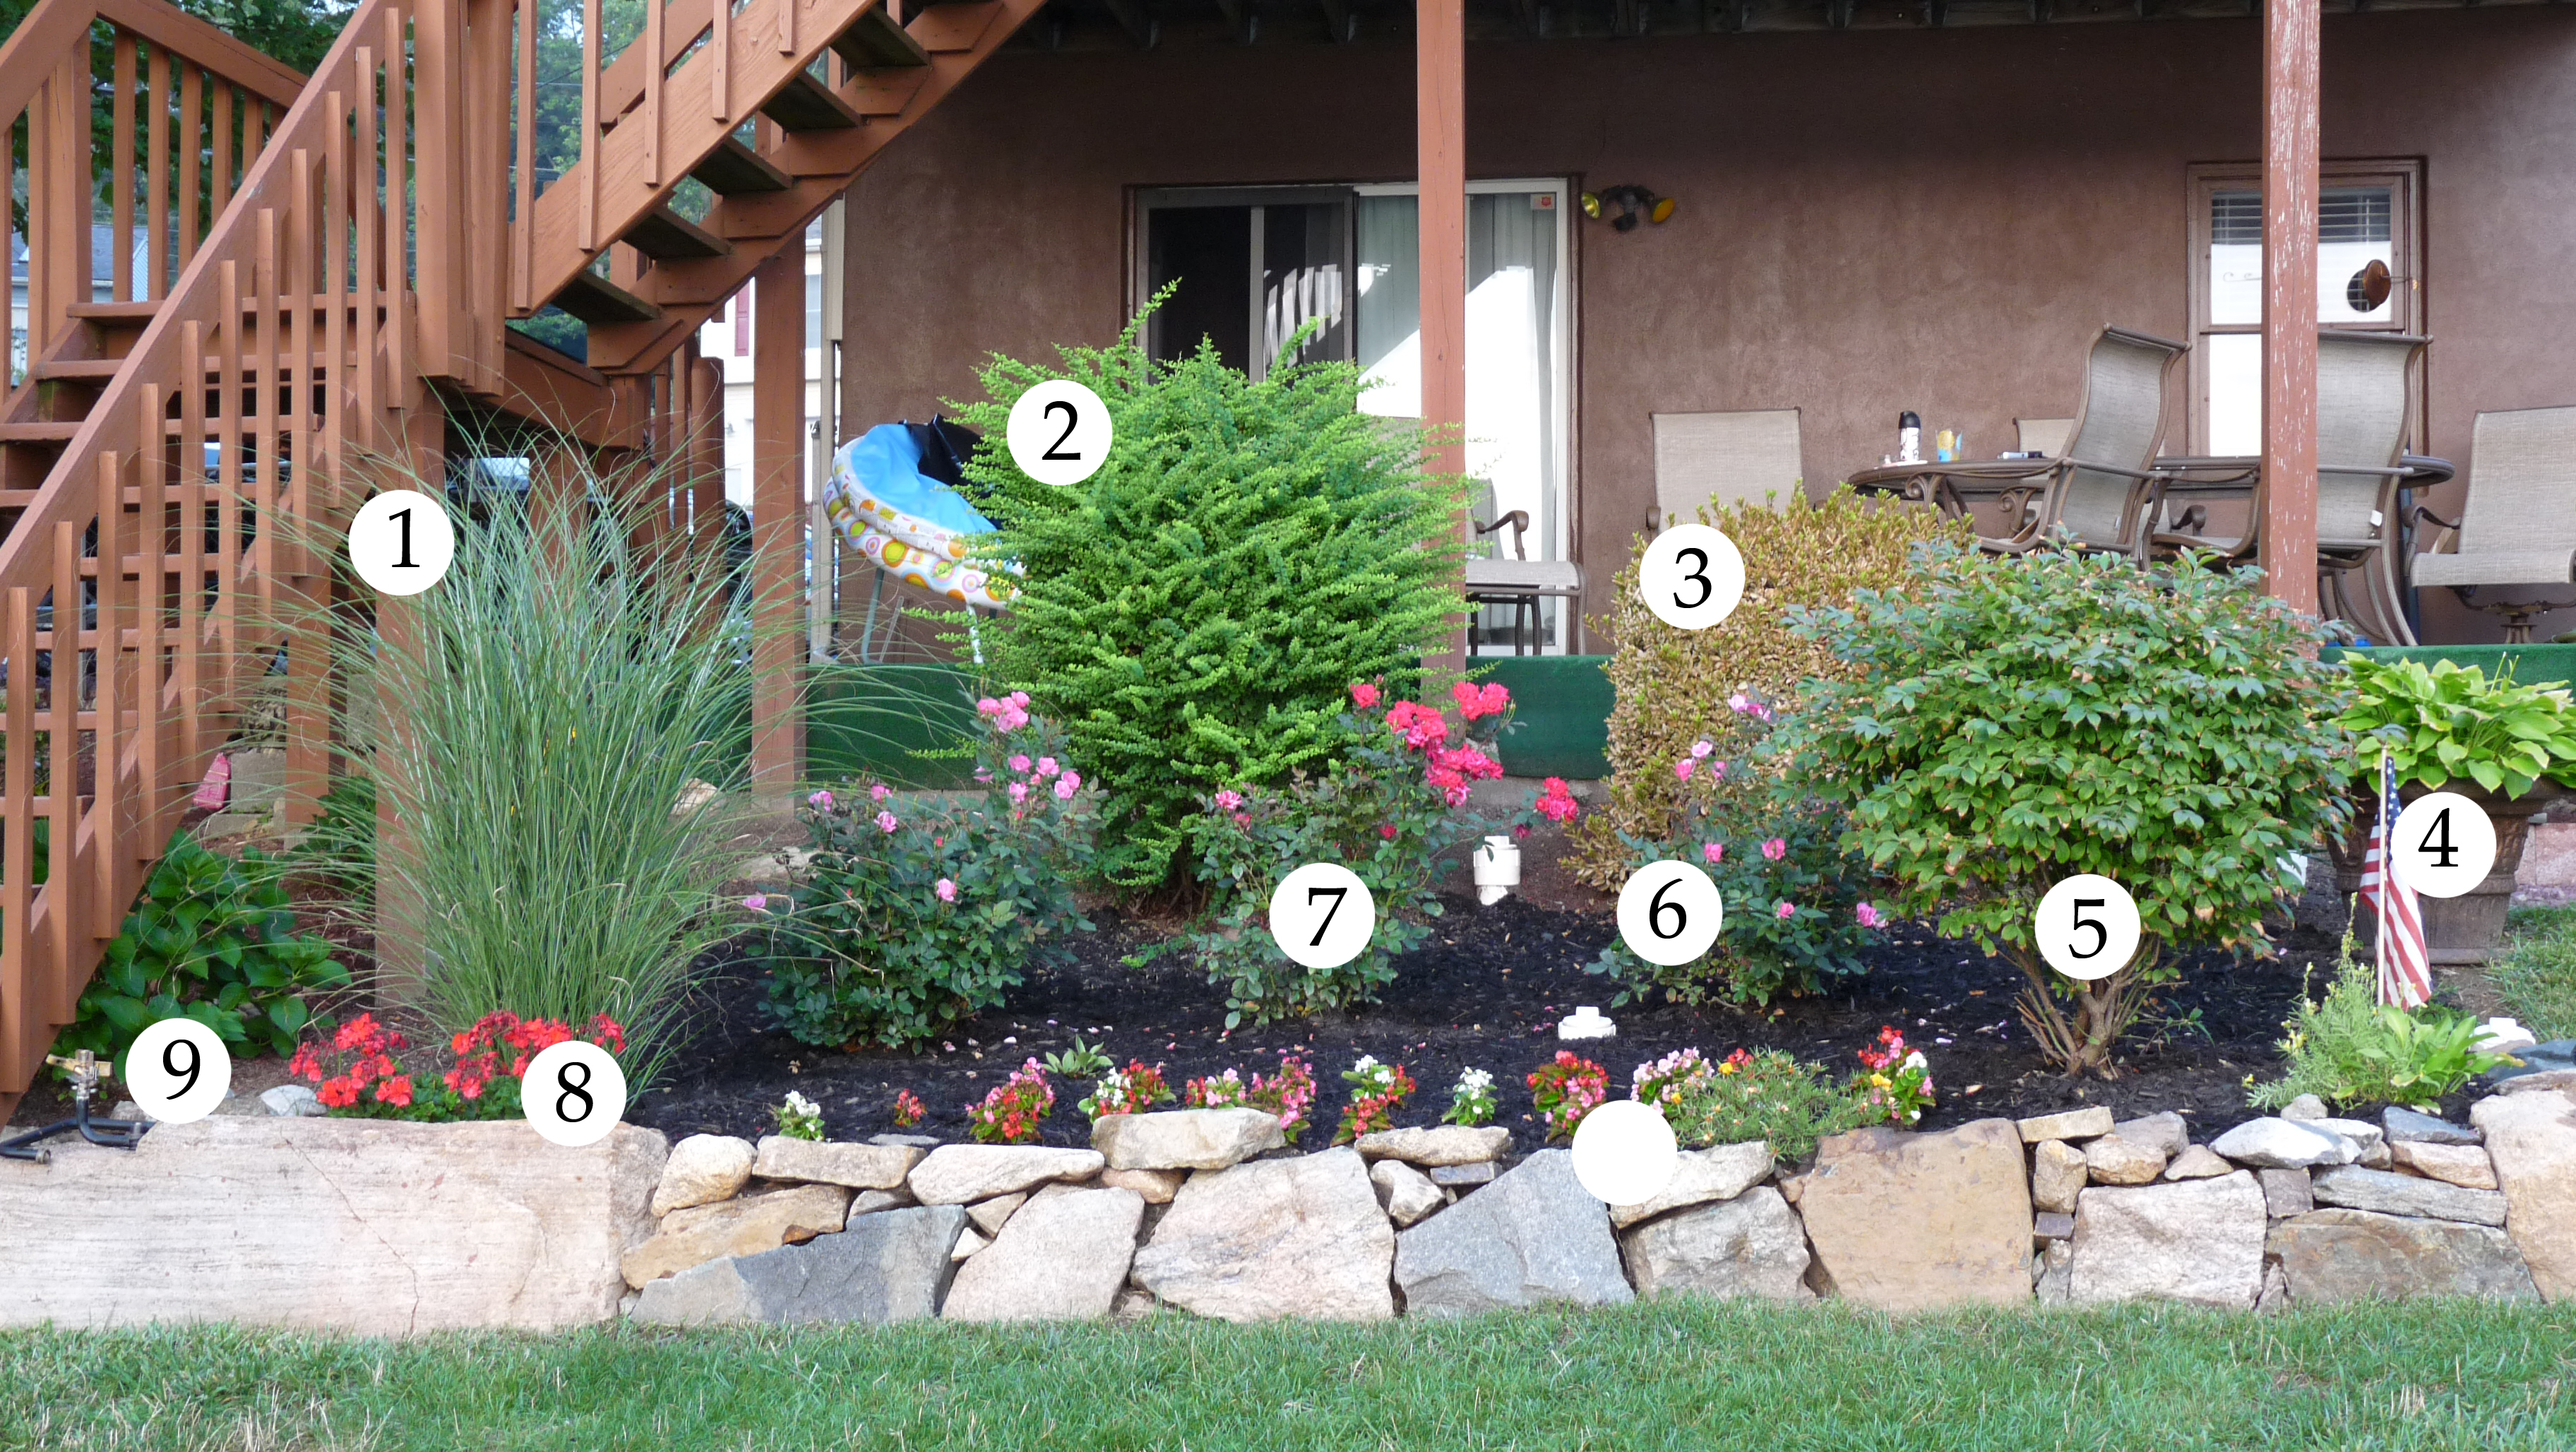 Our lake life how does your garden grow our lake life for Plants for front of house